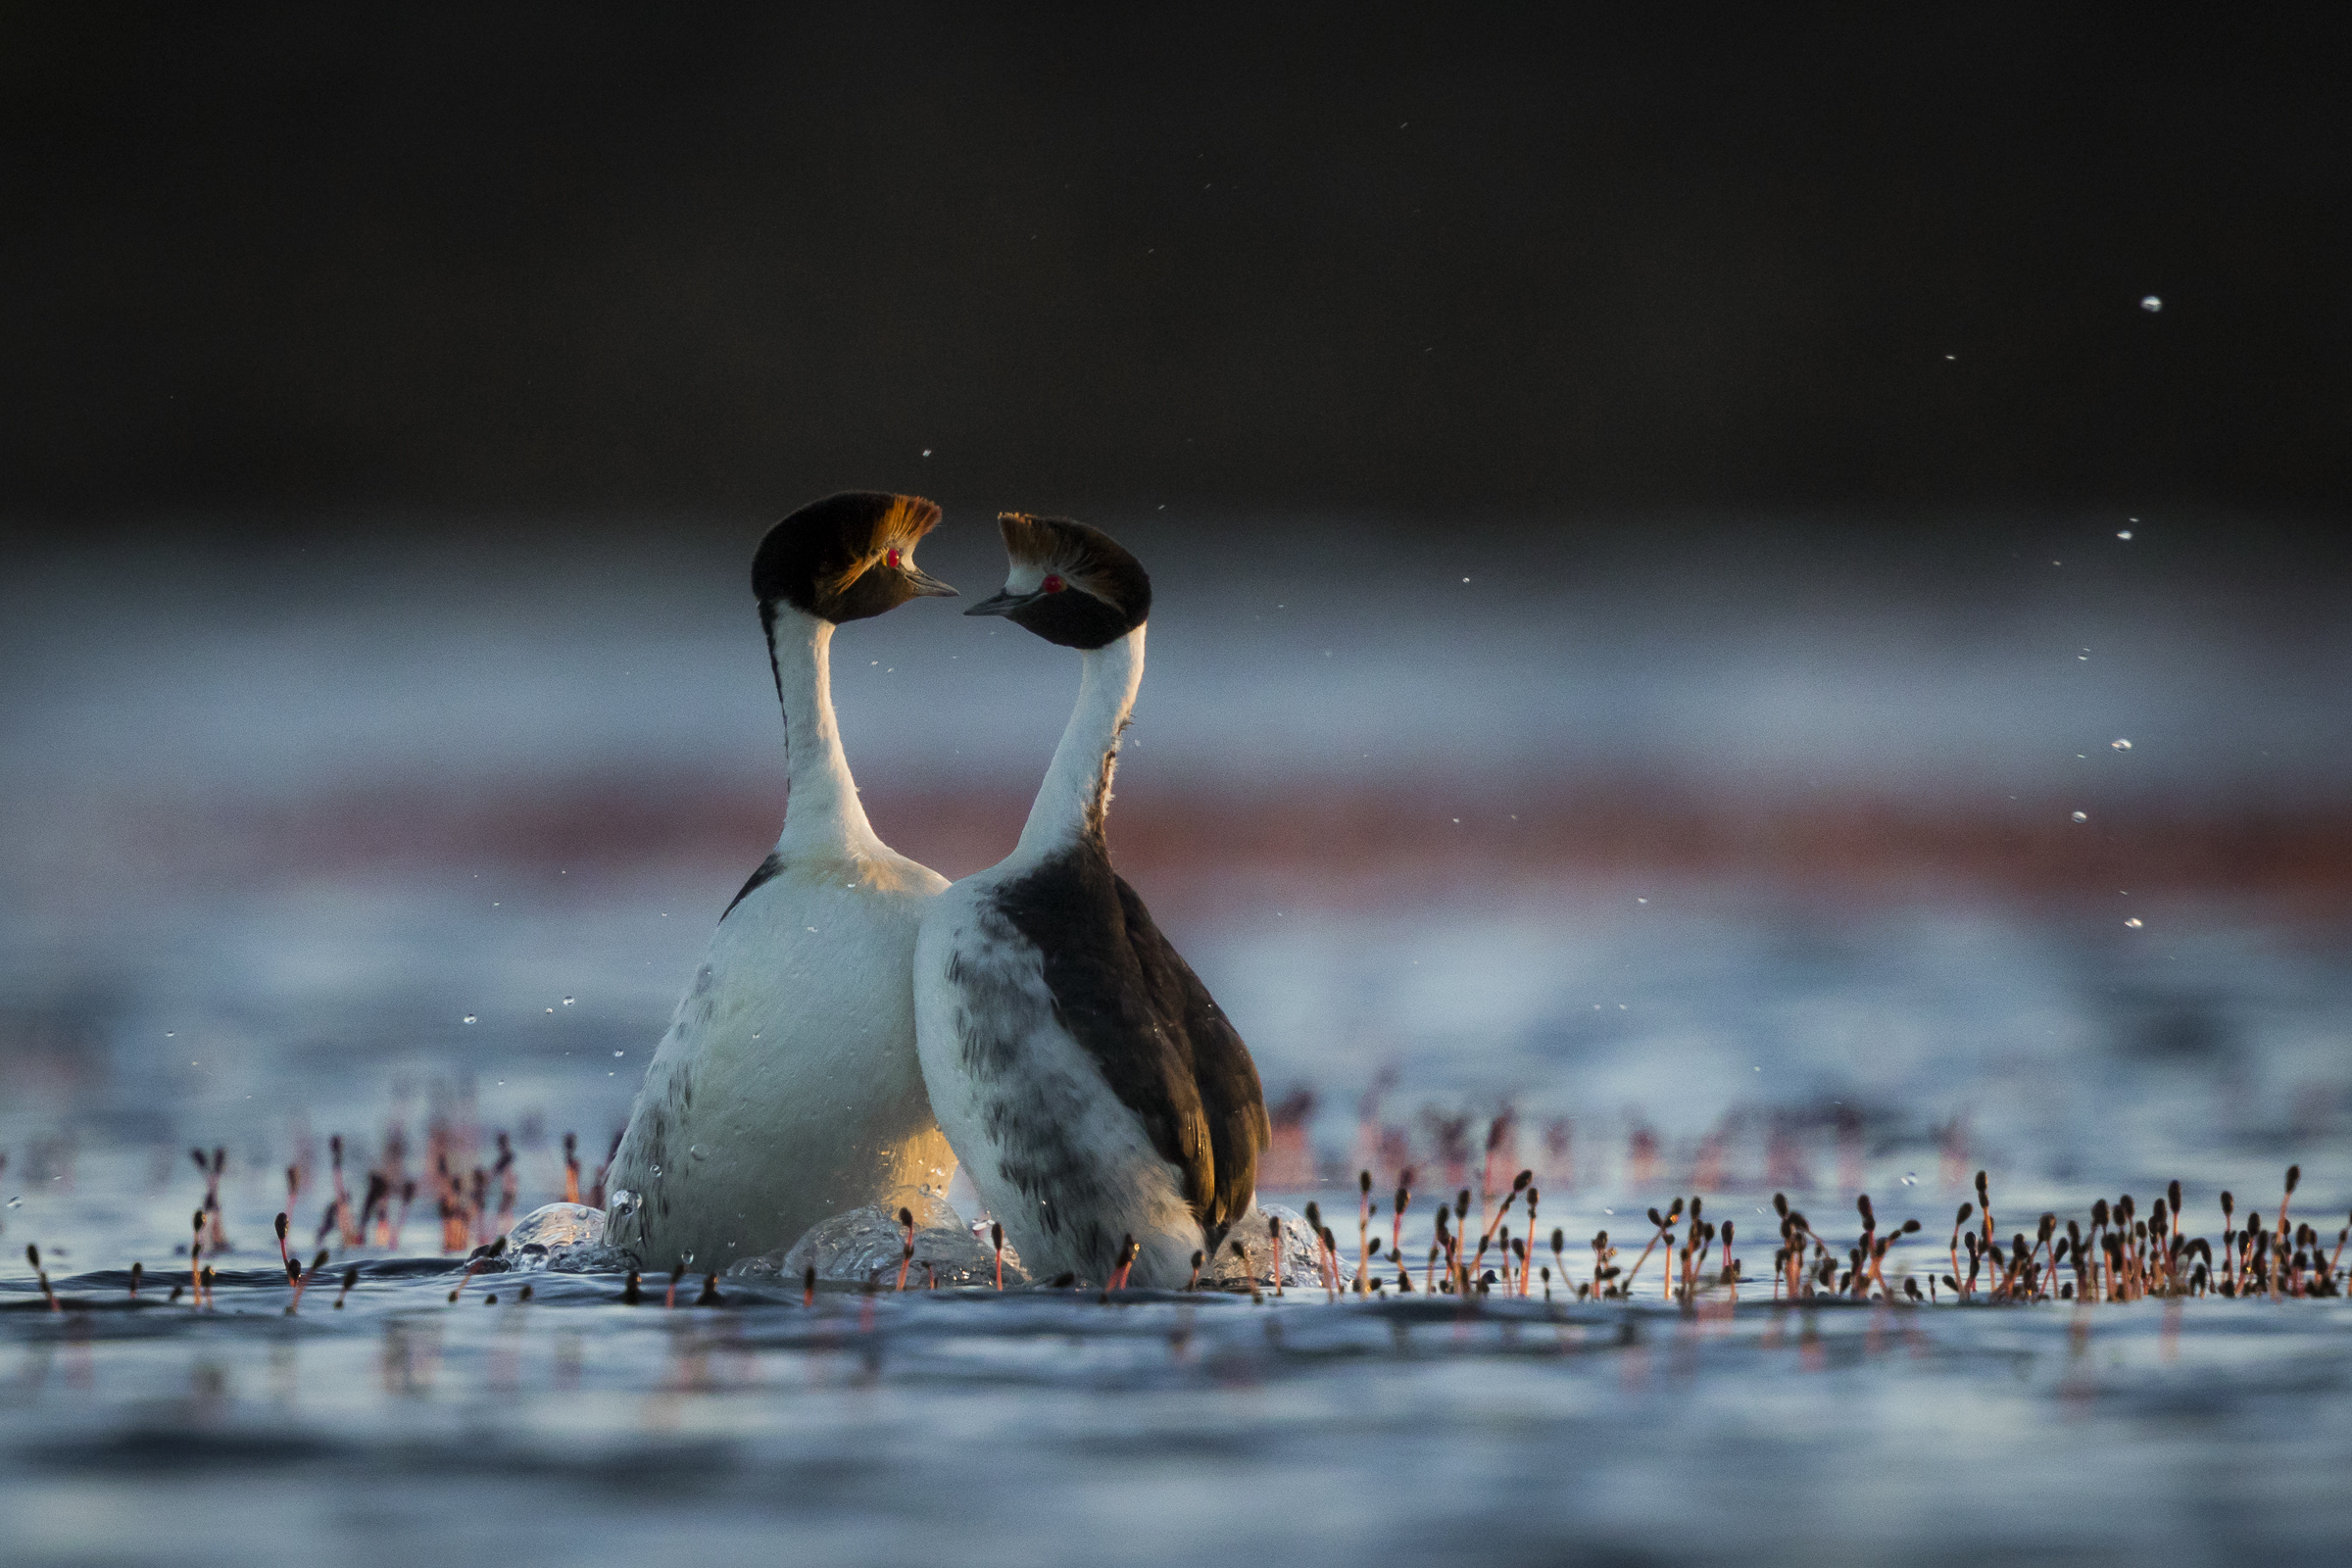 A pair of hooded grebes bond during their highly synchronized courtship display.